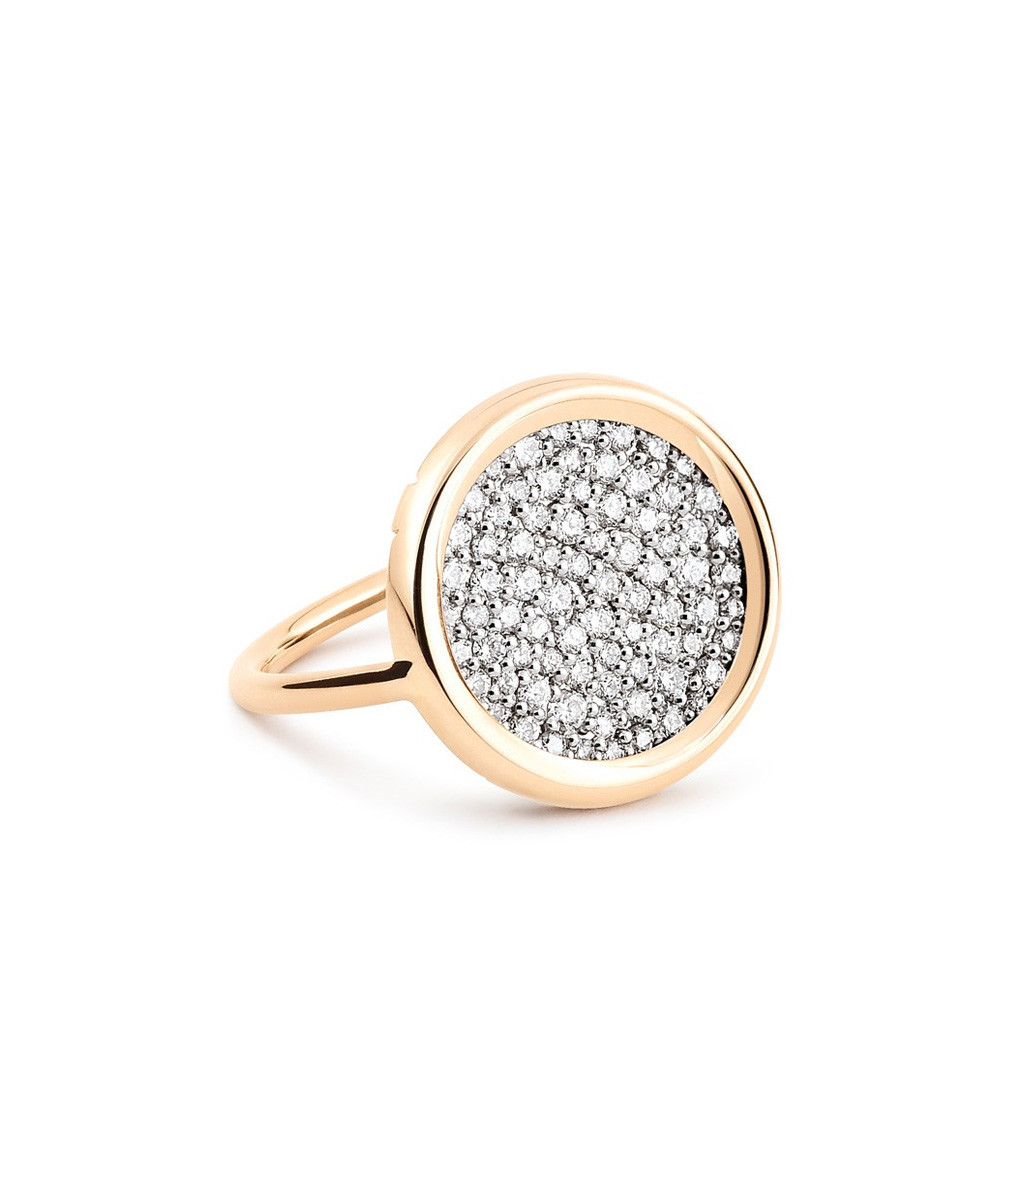 GINETTE_NY - Bague Mini Ever Disc Diamants